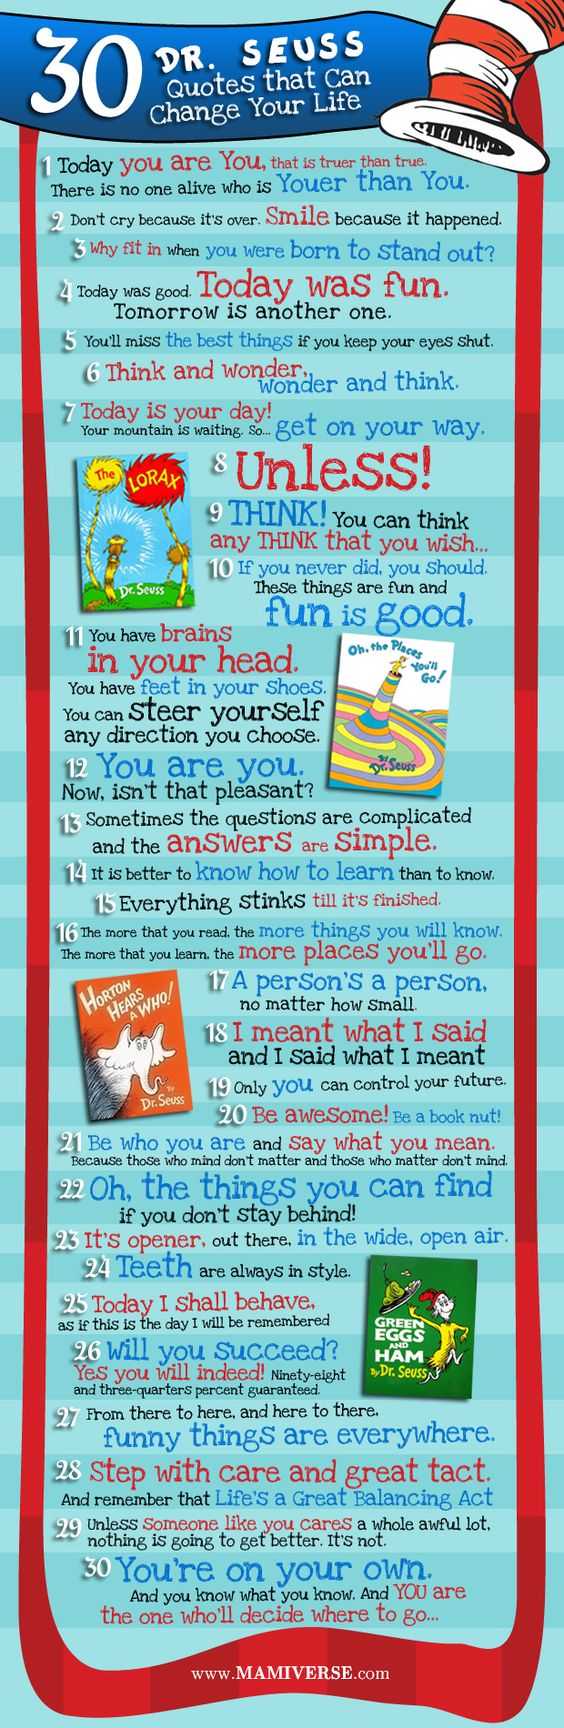 30 Dr Seuss Quotes to Live By